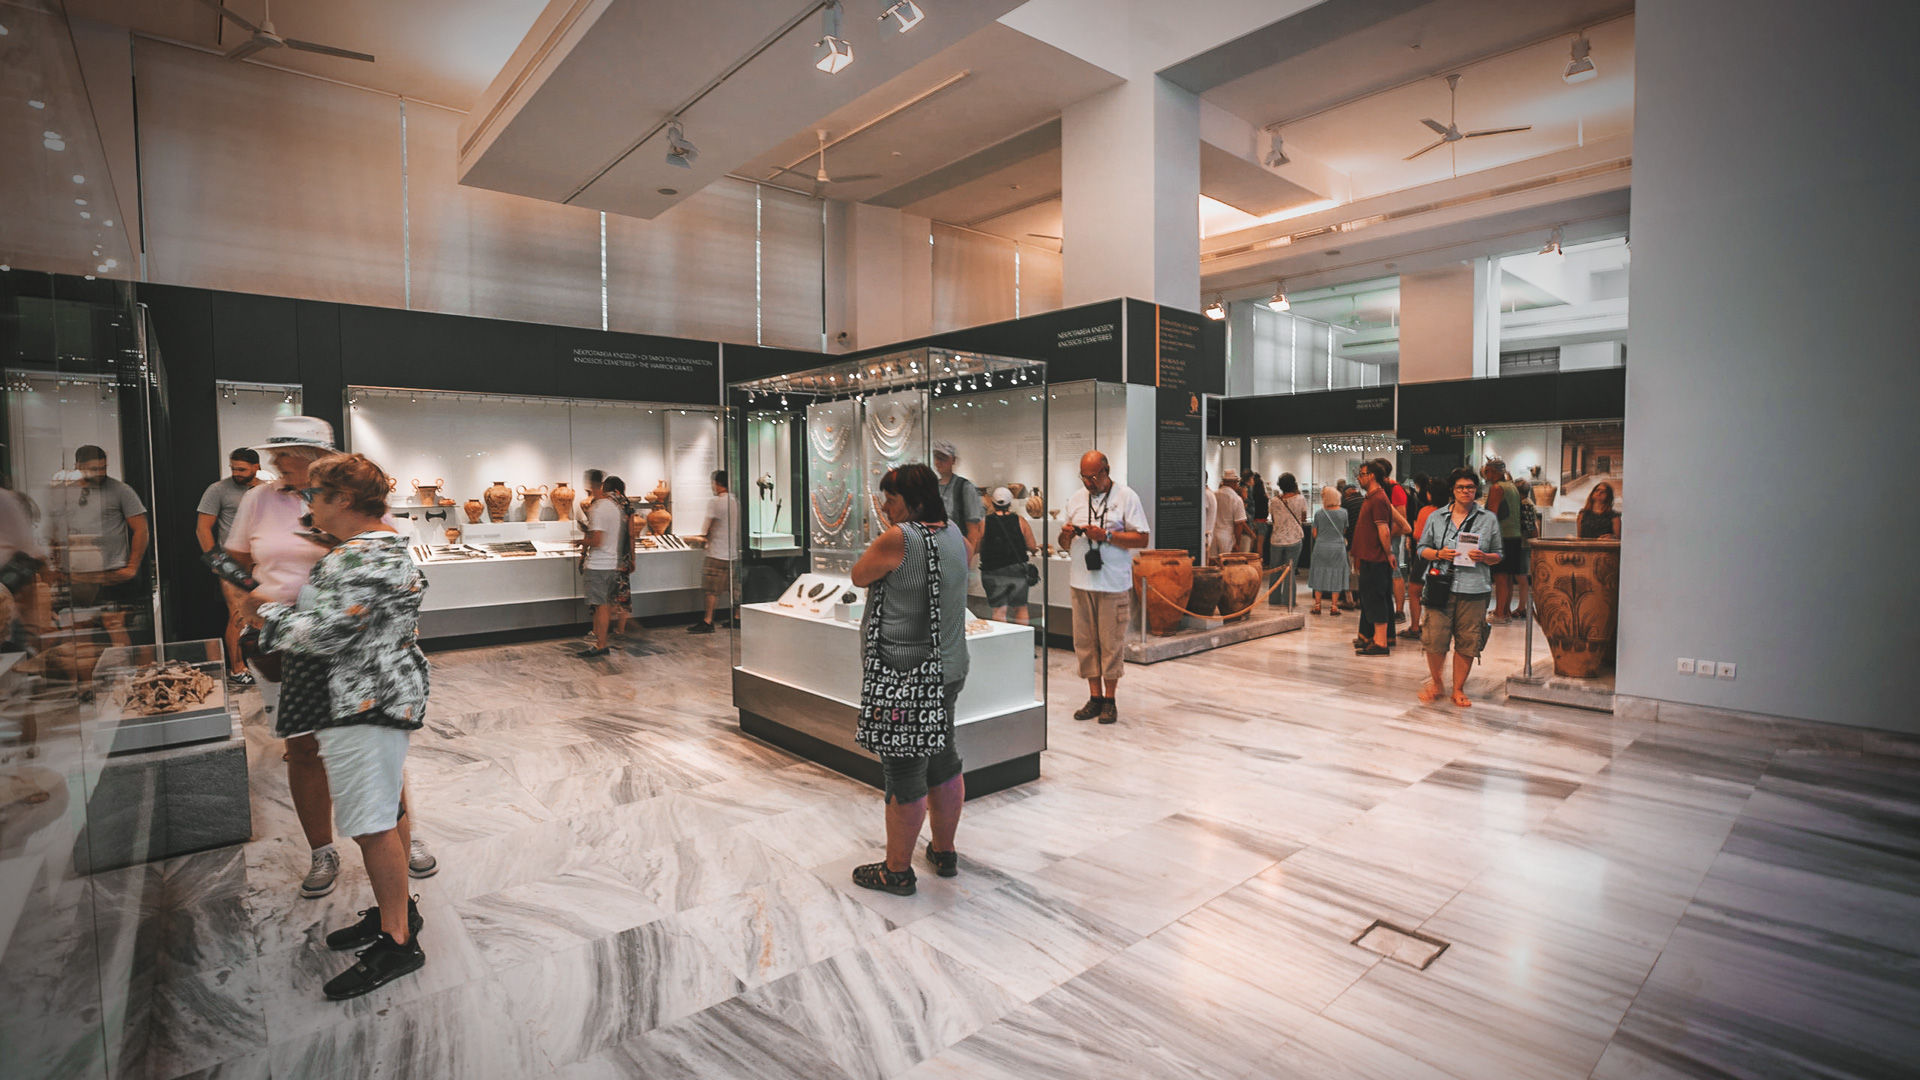 The Archaeological Museum of Heraklion brings to life more than 5,500 years of history